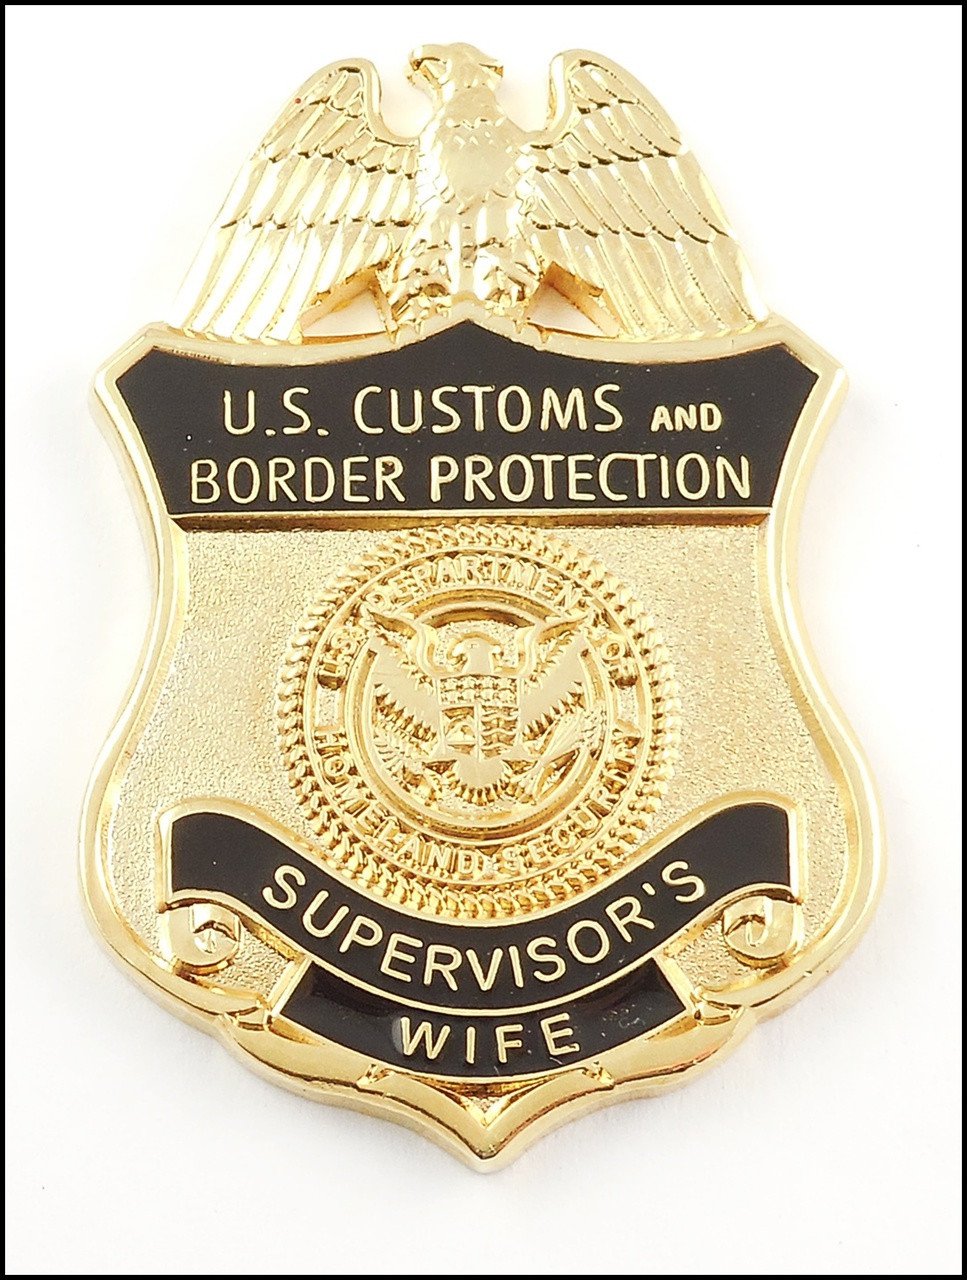 Customs and Border Protection Supervisor Wife Mini Badge Magnet